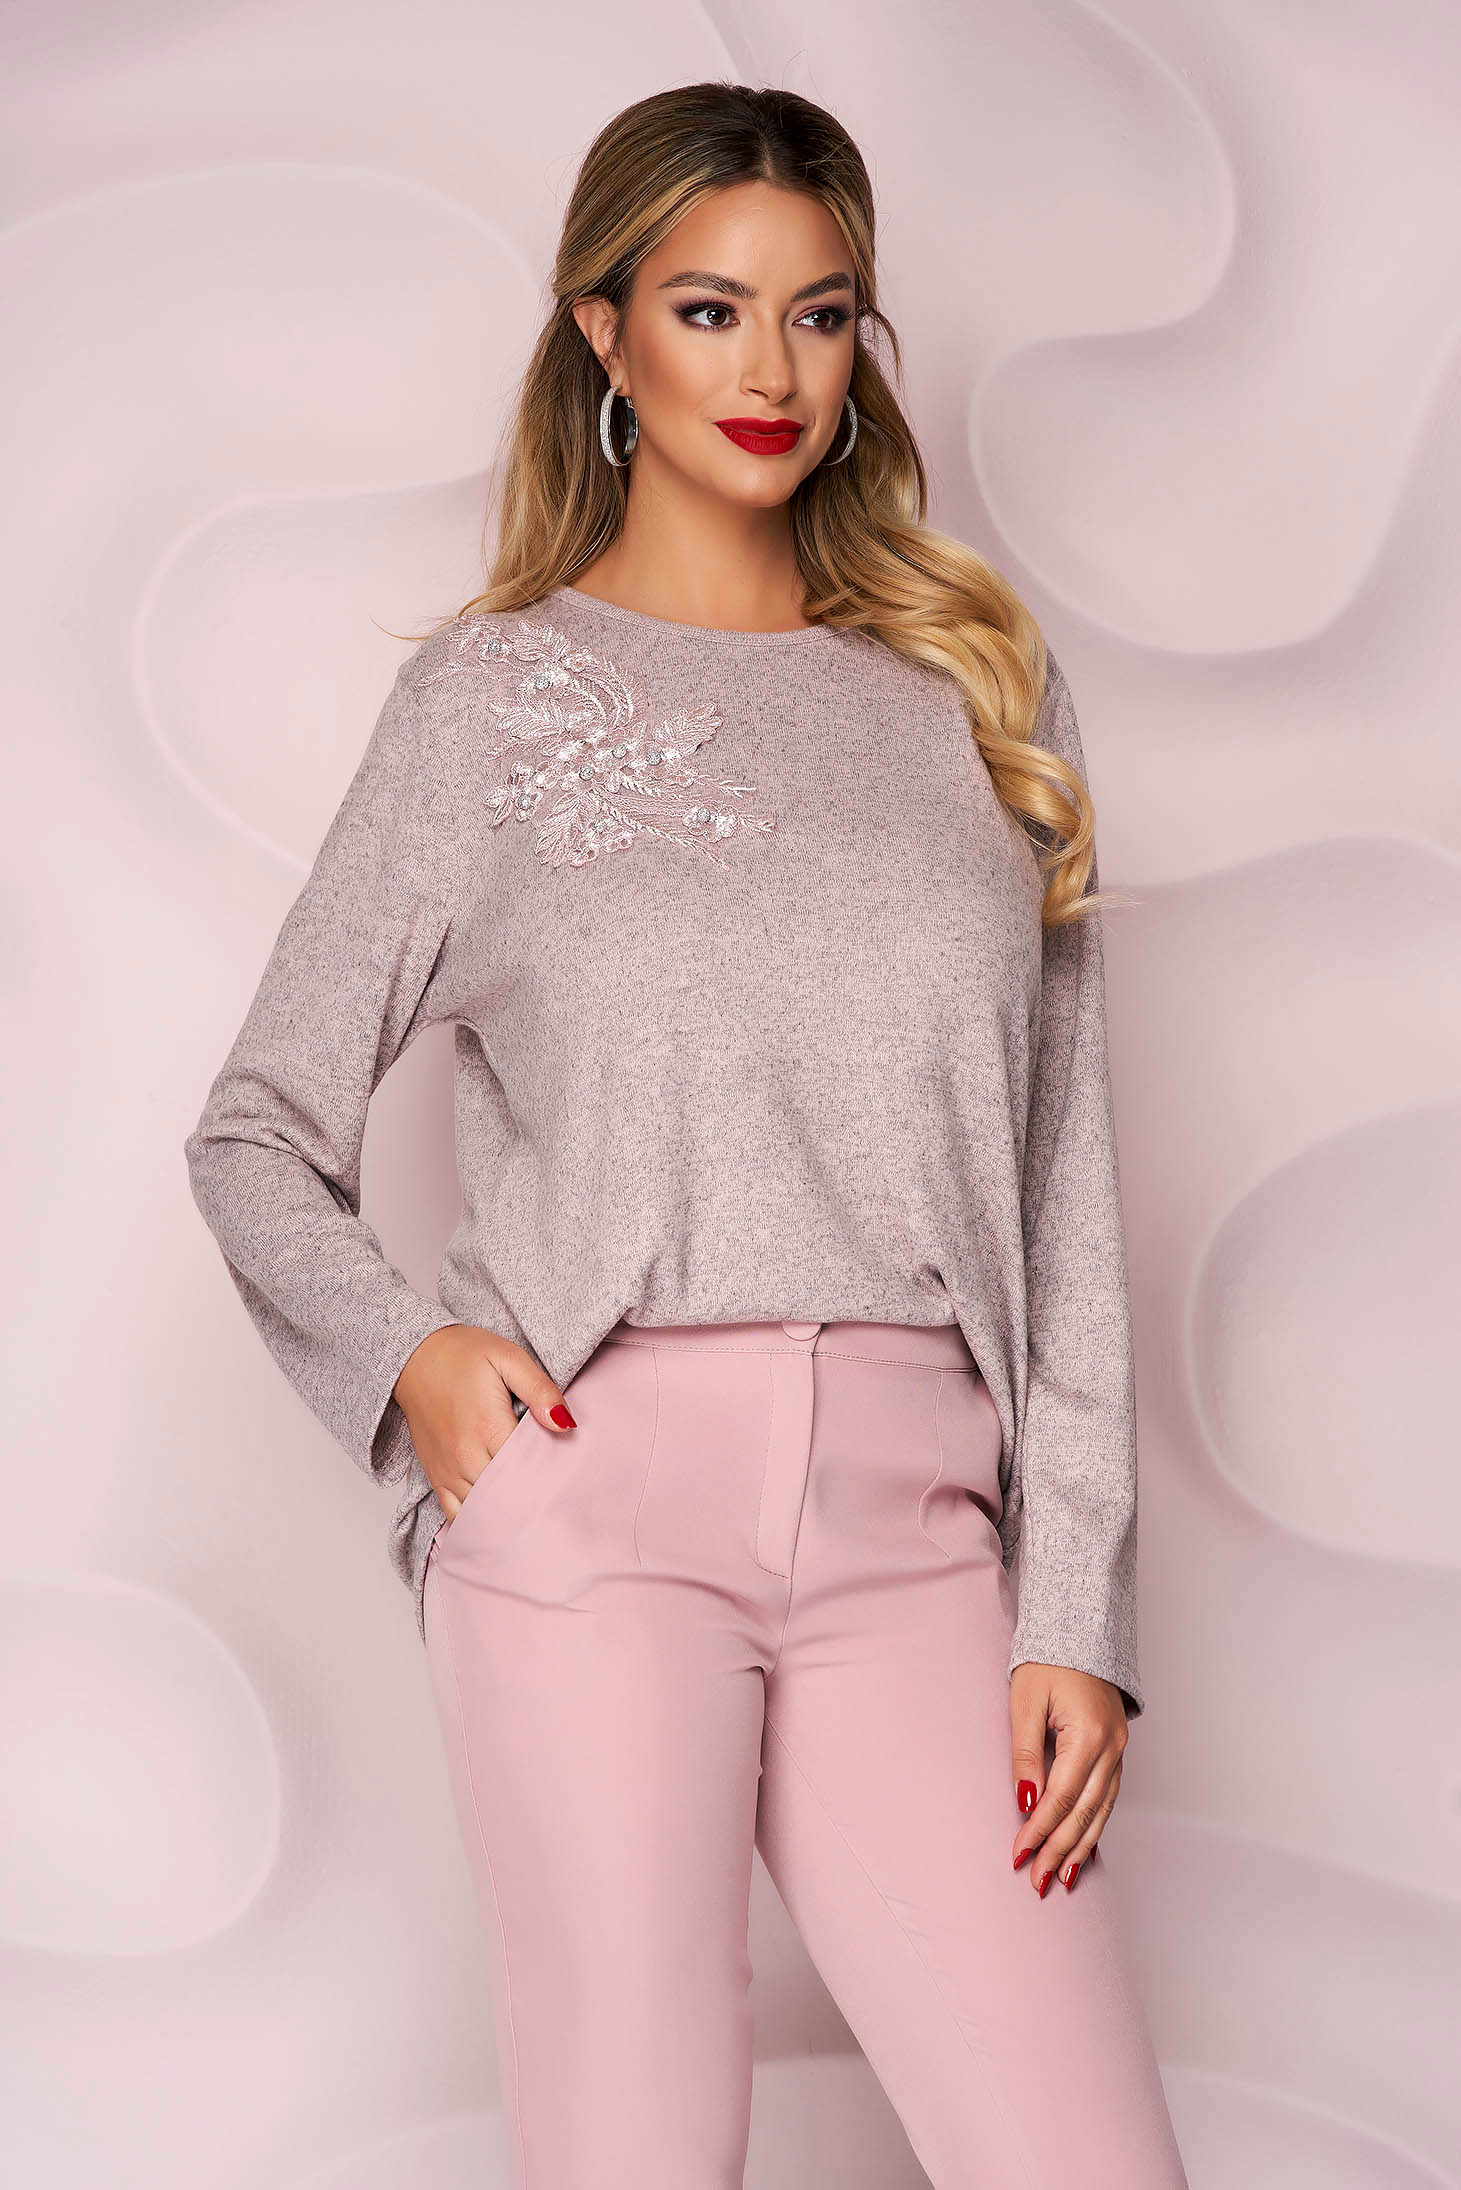 Lightpink sweater office loose fit thin fabric from elastic fabric knitted fabric